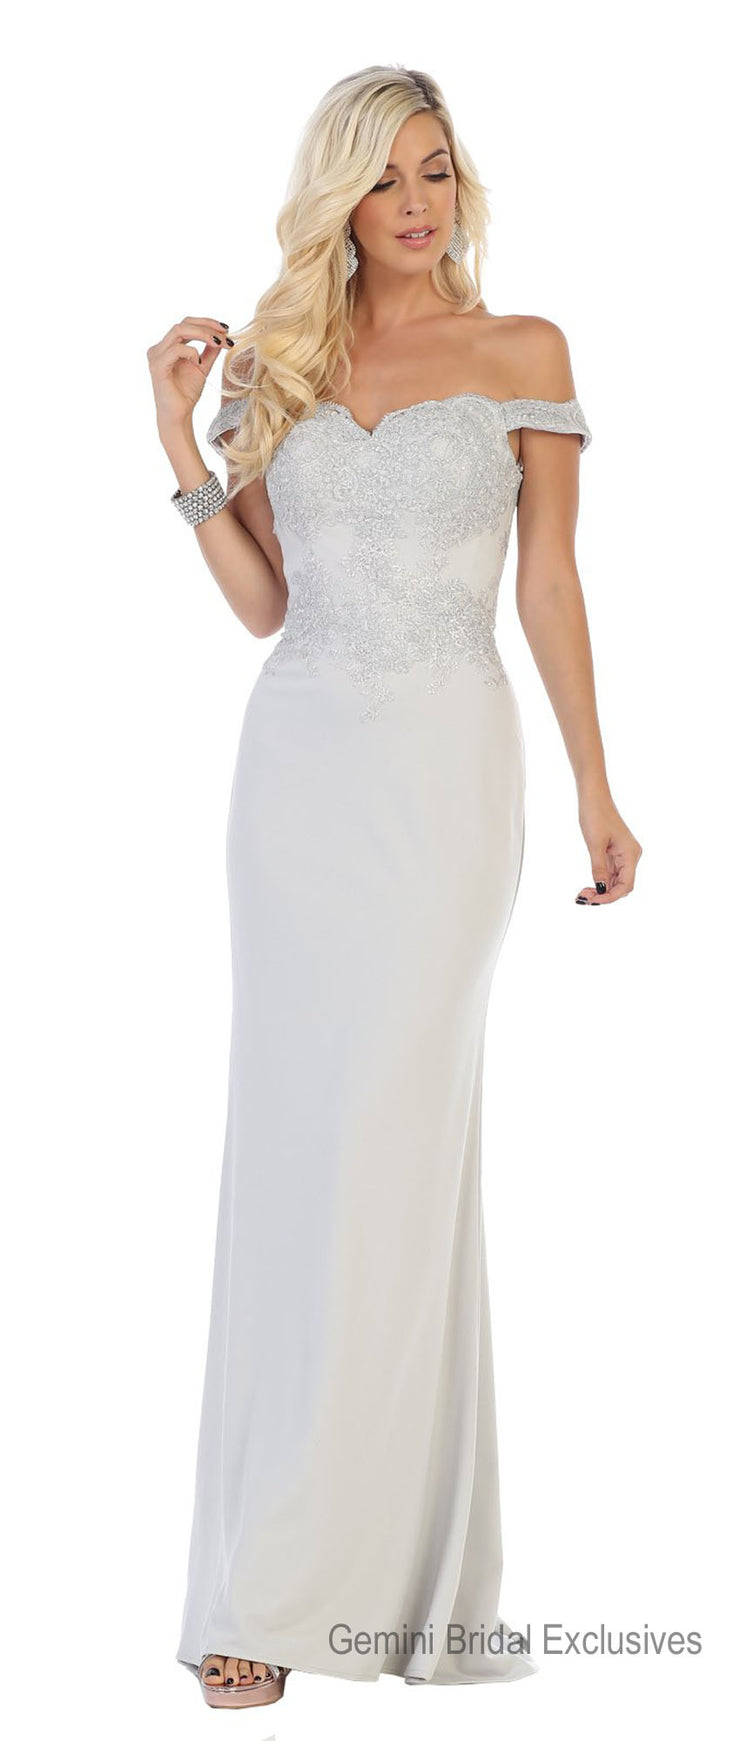 Gemini Exclusives 29M1529B-Gemini Bridal Prom Tuxedo Centre